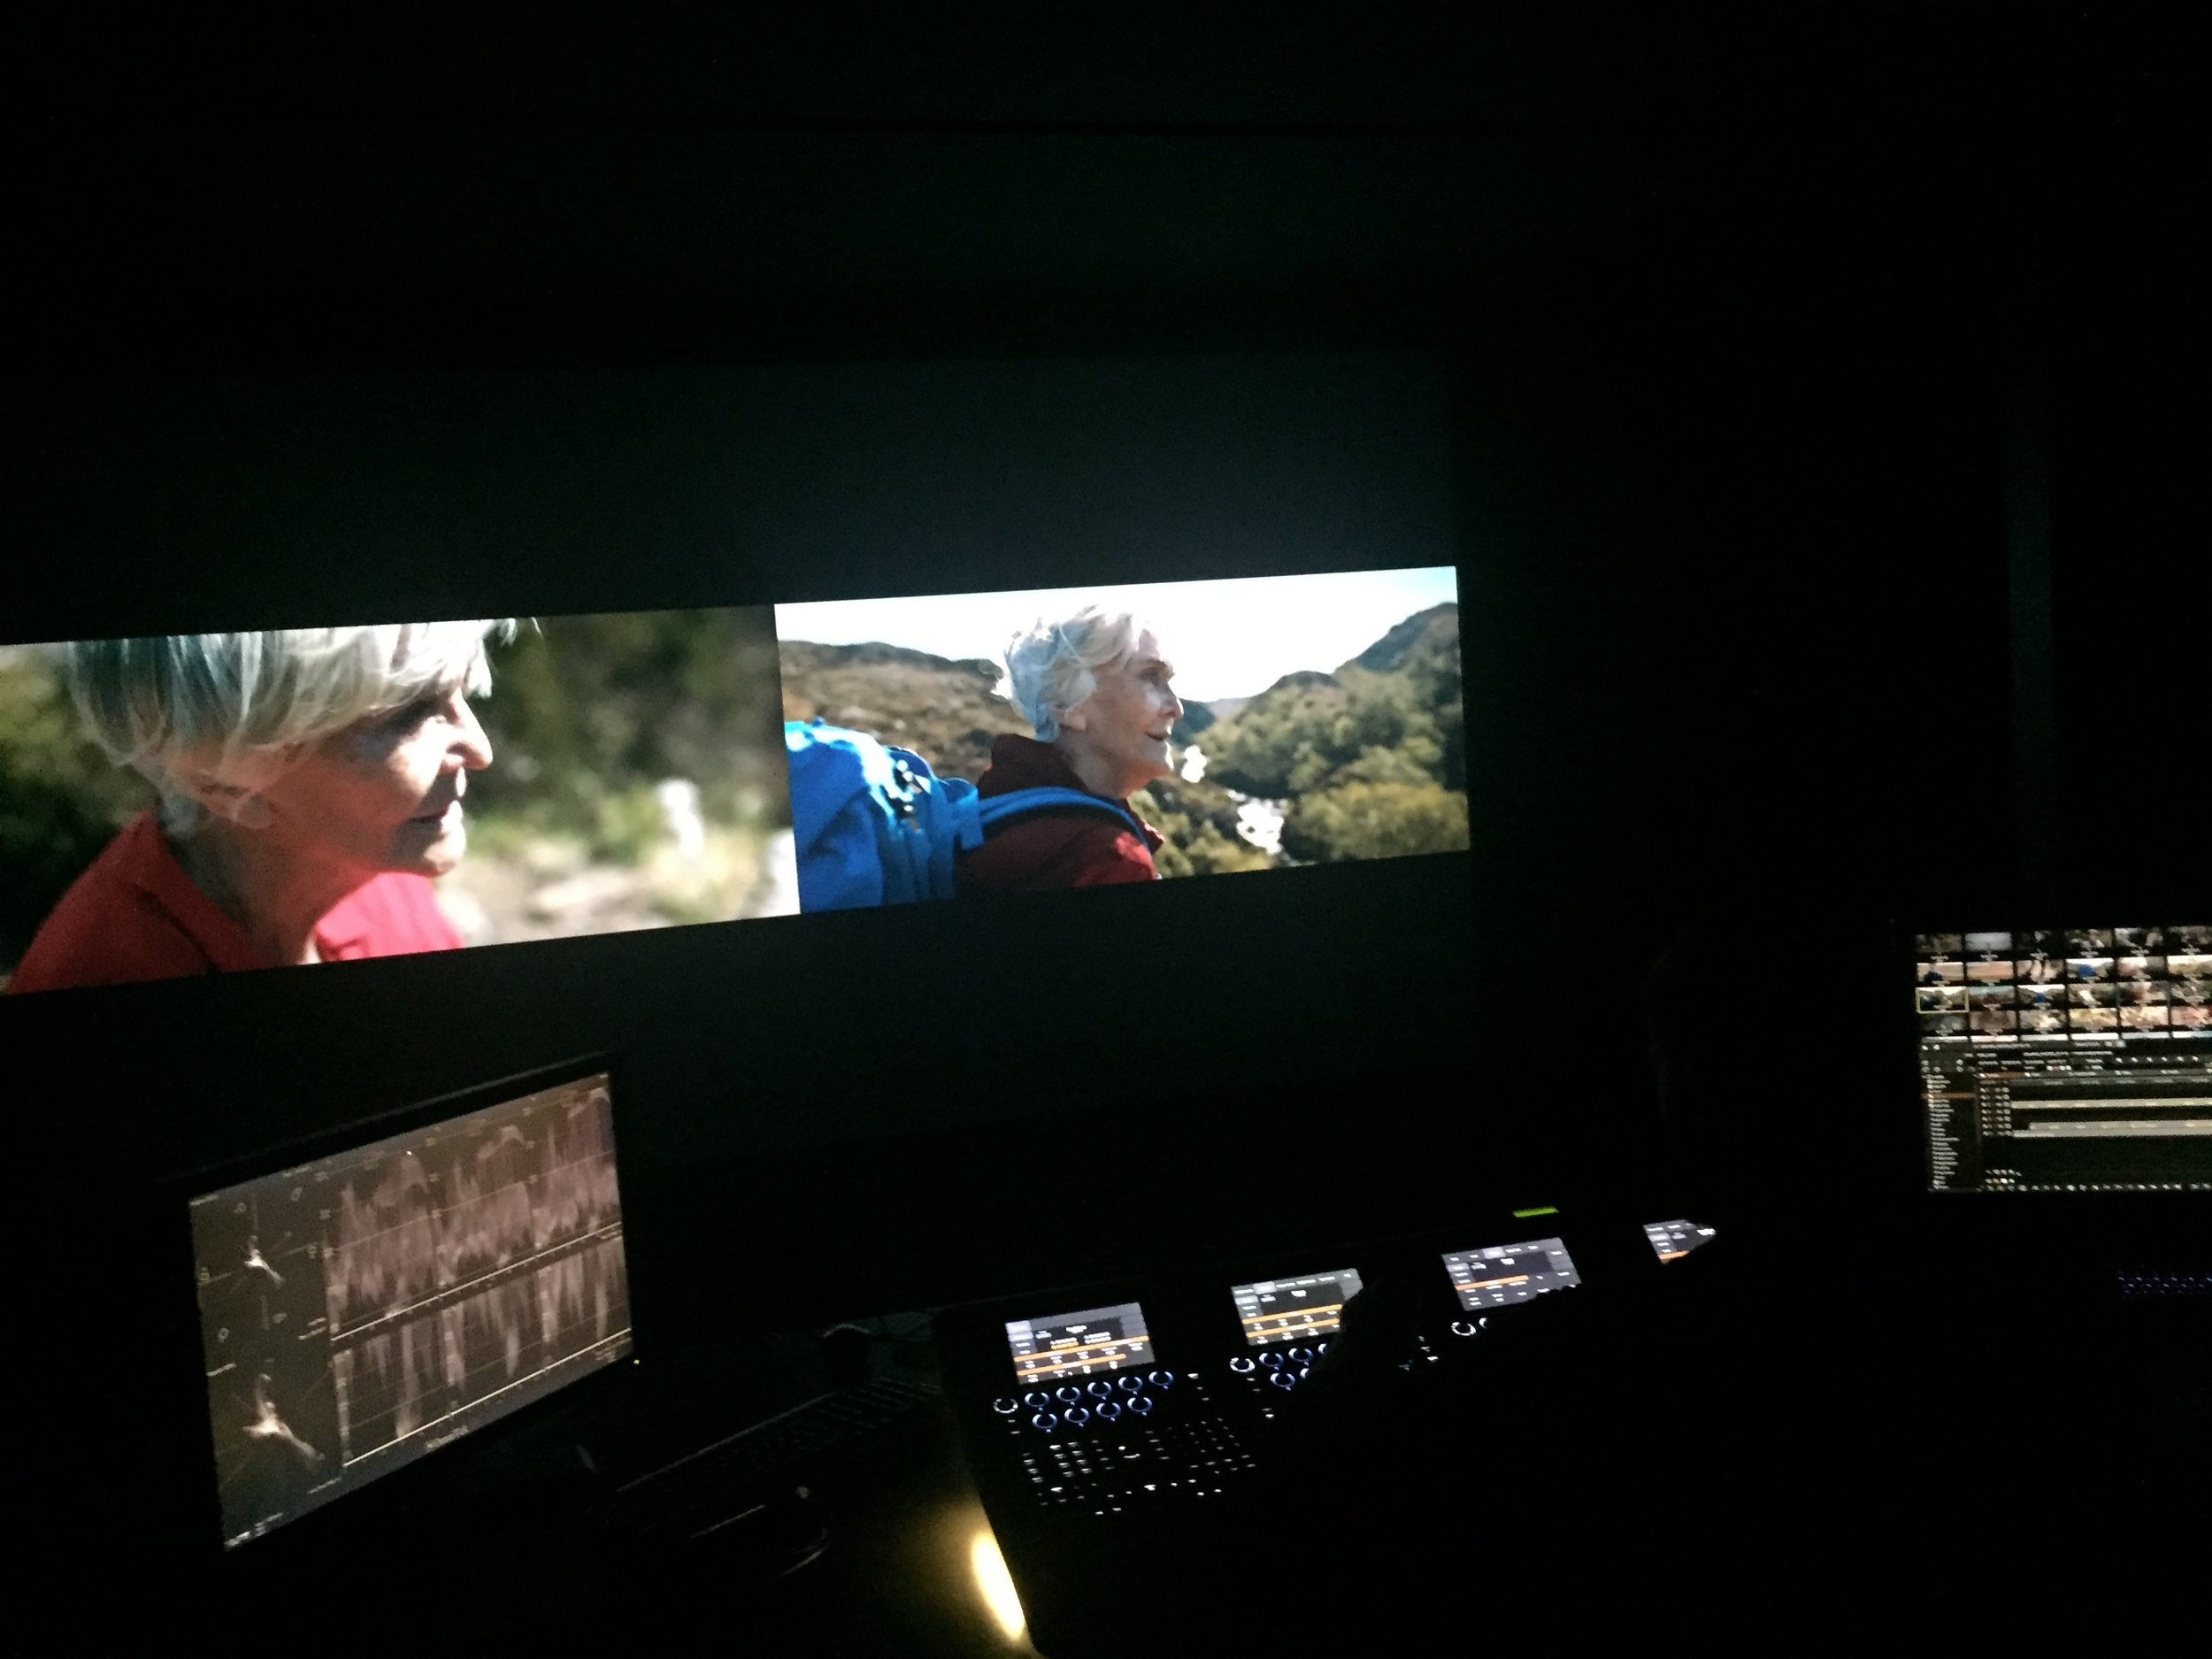 Grading with digital colourist Gregor Pfüller at Post Republic in Berlin, Germany.